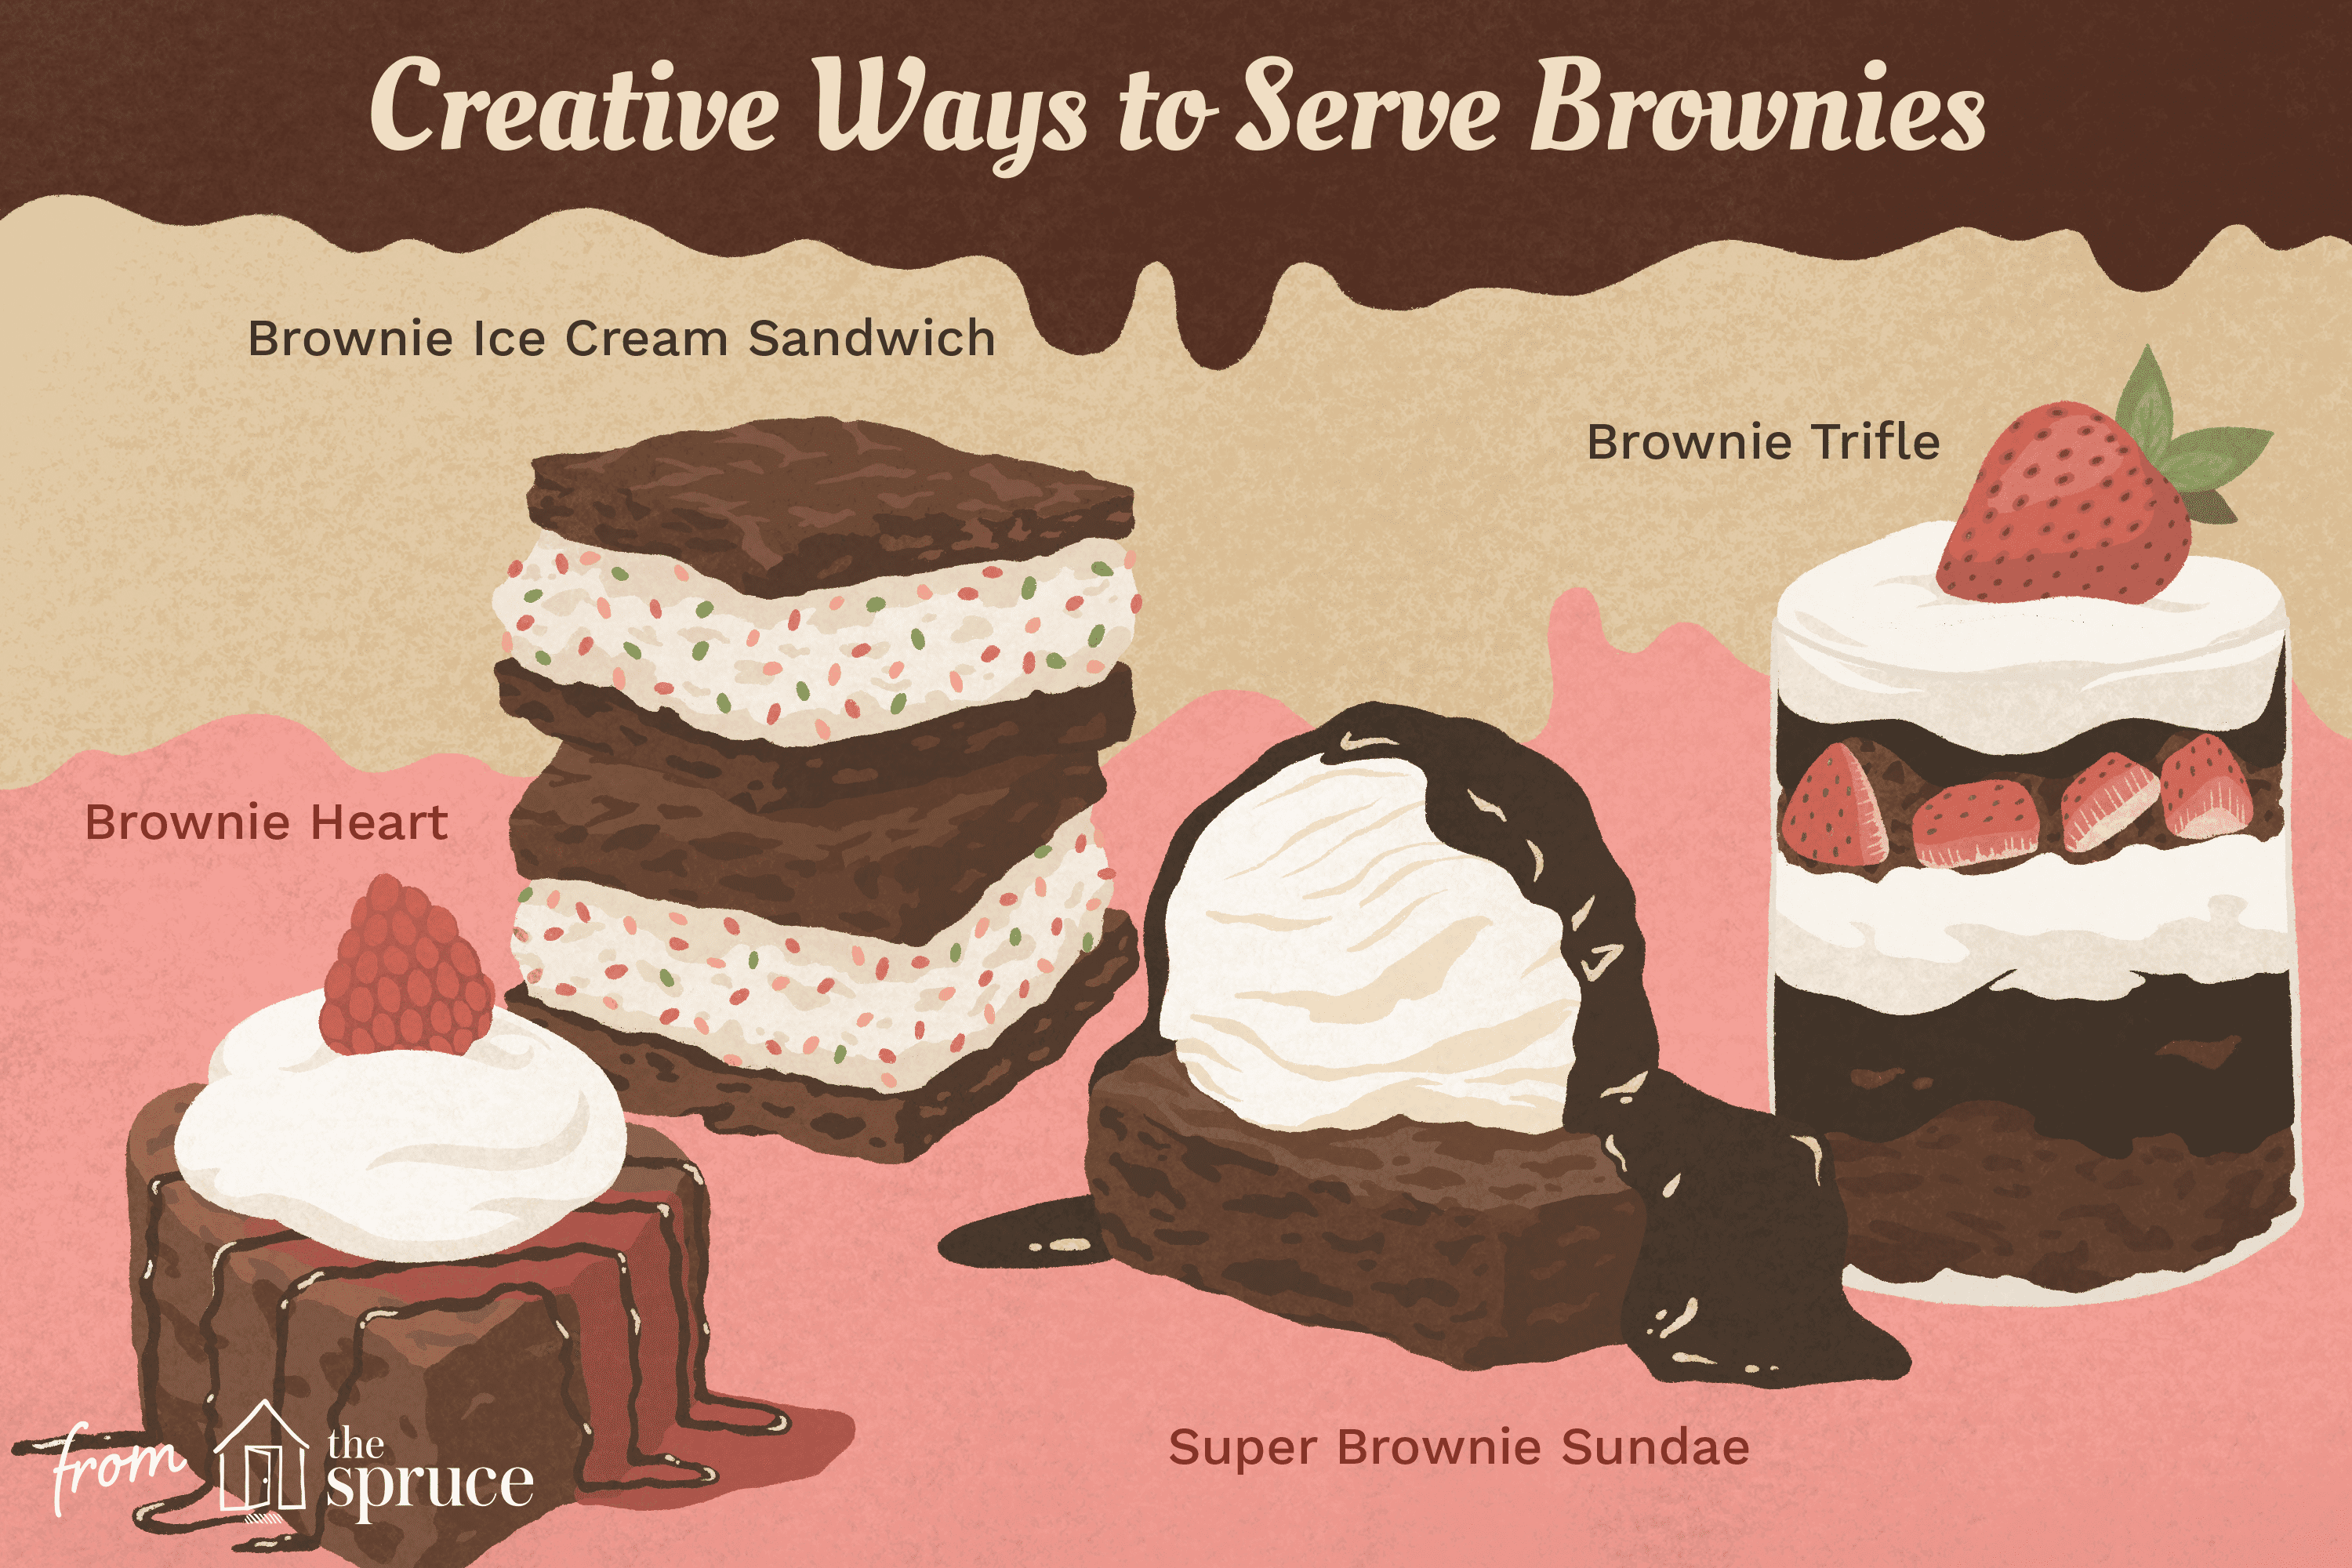 illustration that shows four different ways to serve brownies